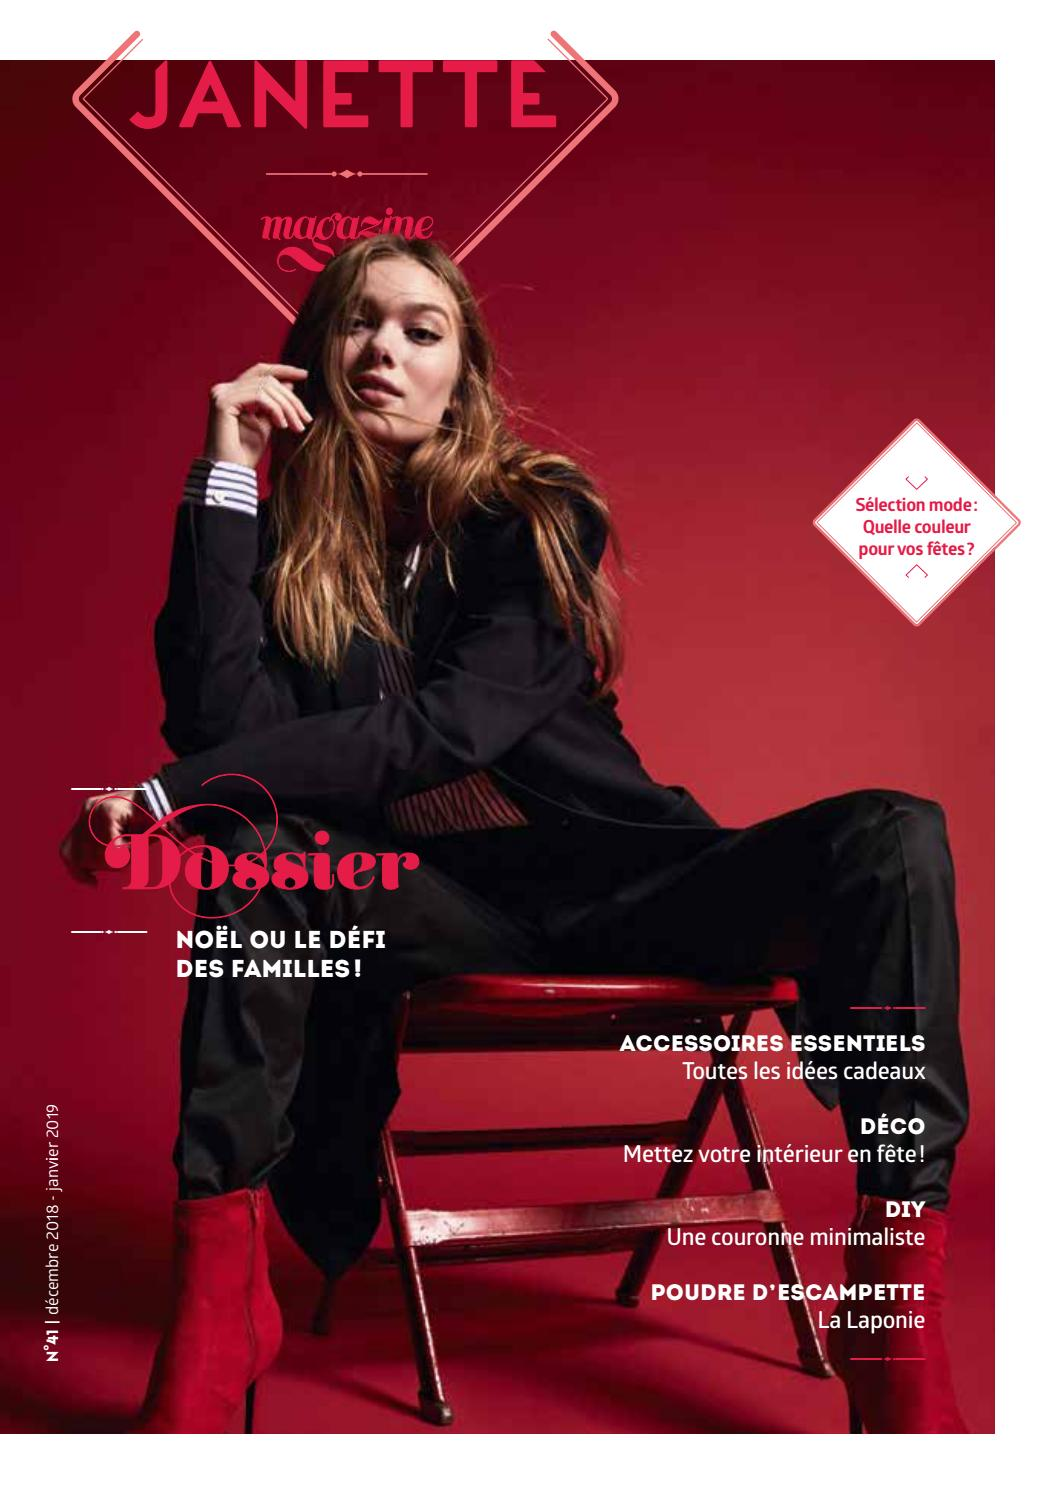 Janette issuu Magazine Janette 2018 Decembre by 41 Pwk08On